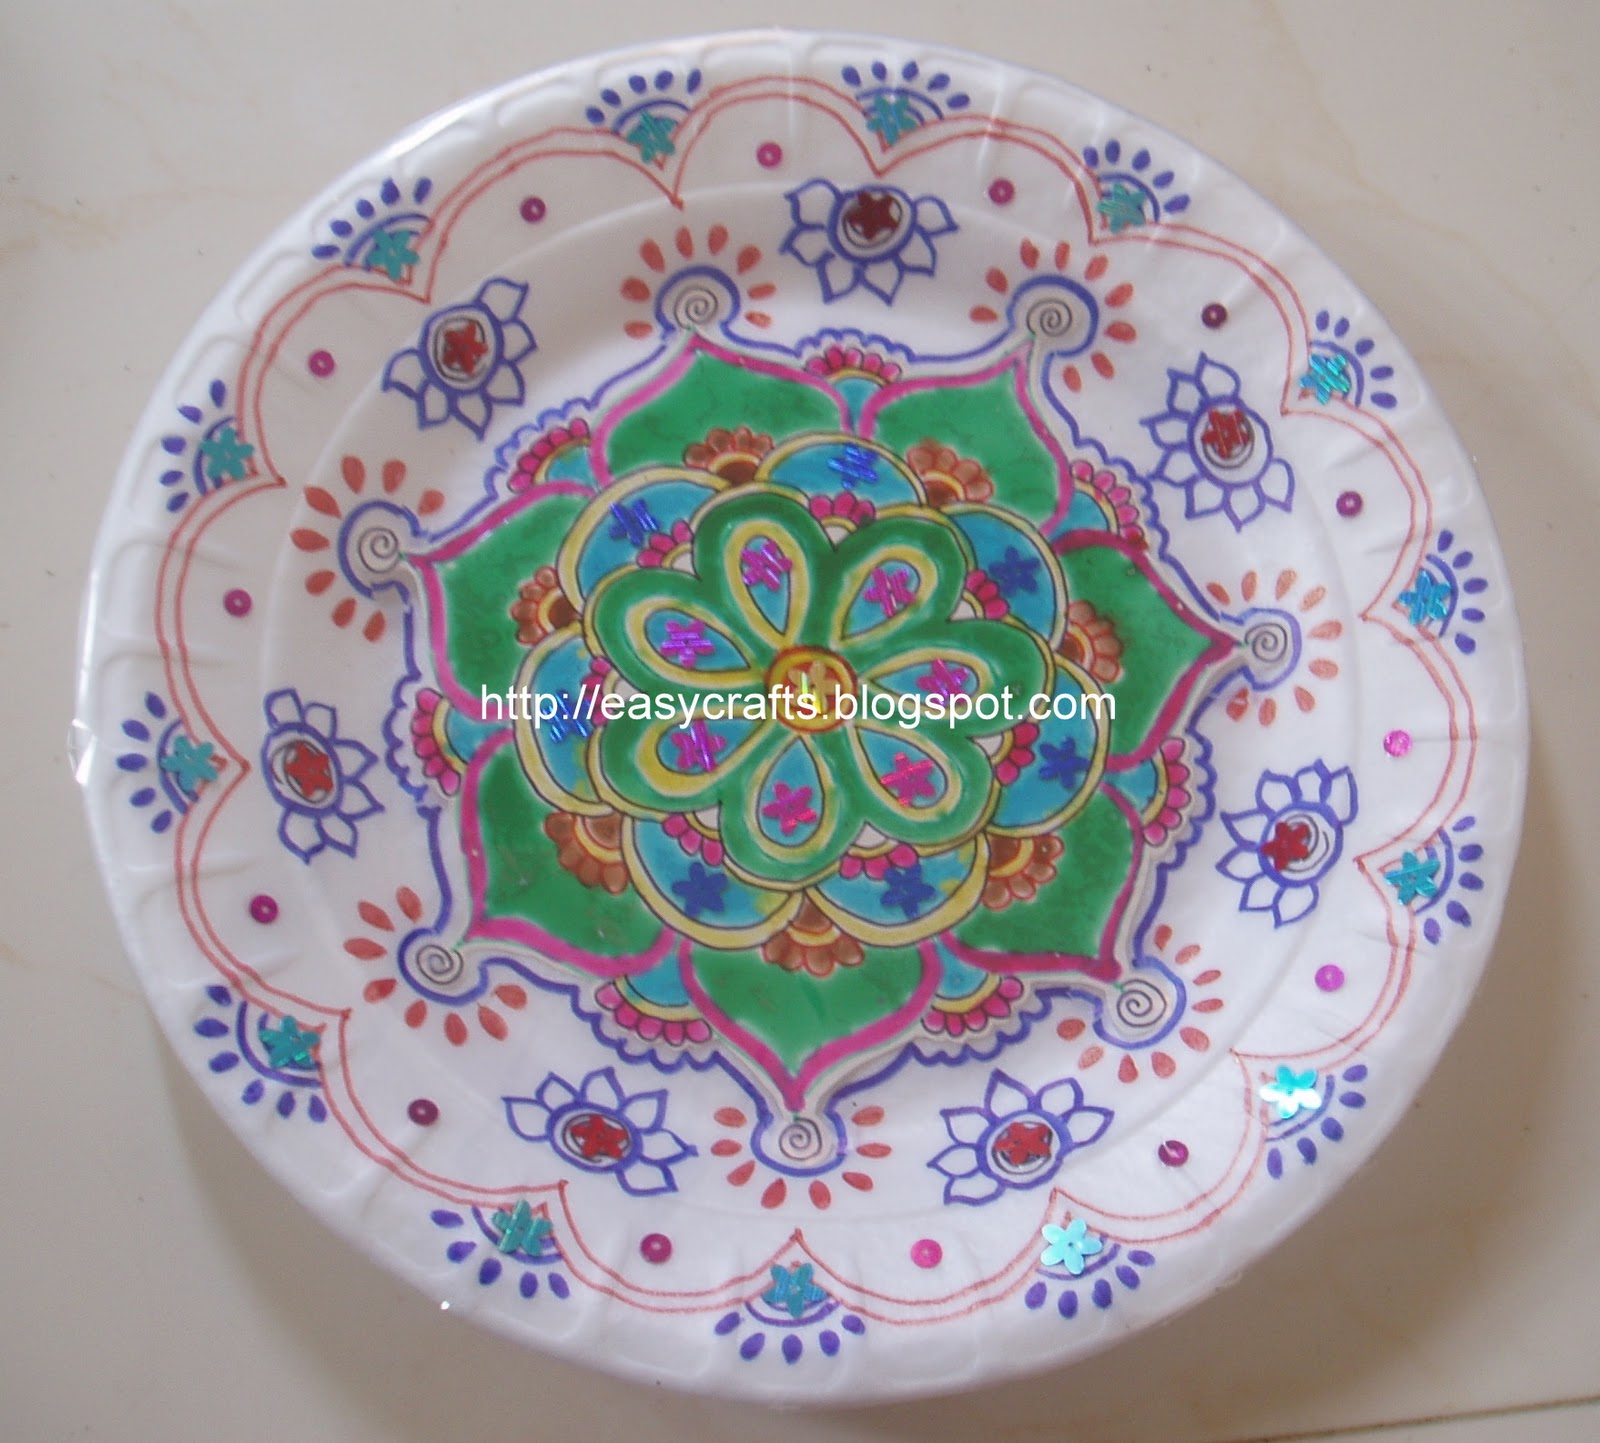 Easy crafts explore your creativity decorative aarti plate - Decoratieve platen ...